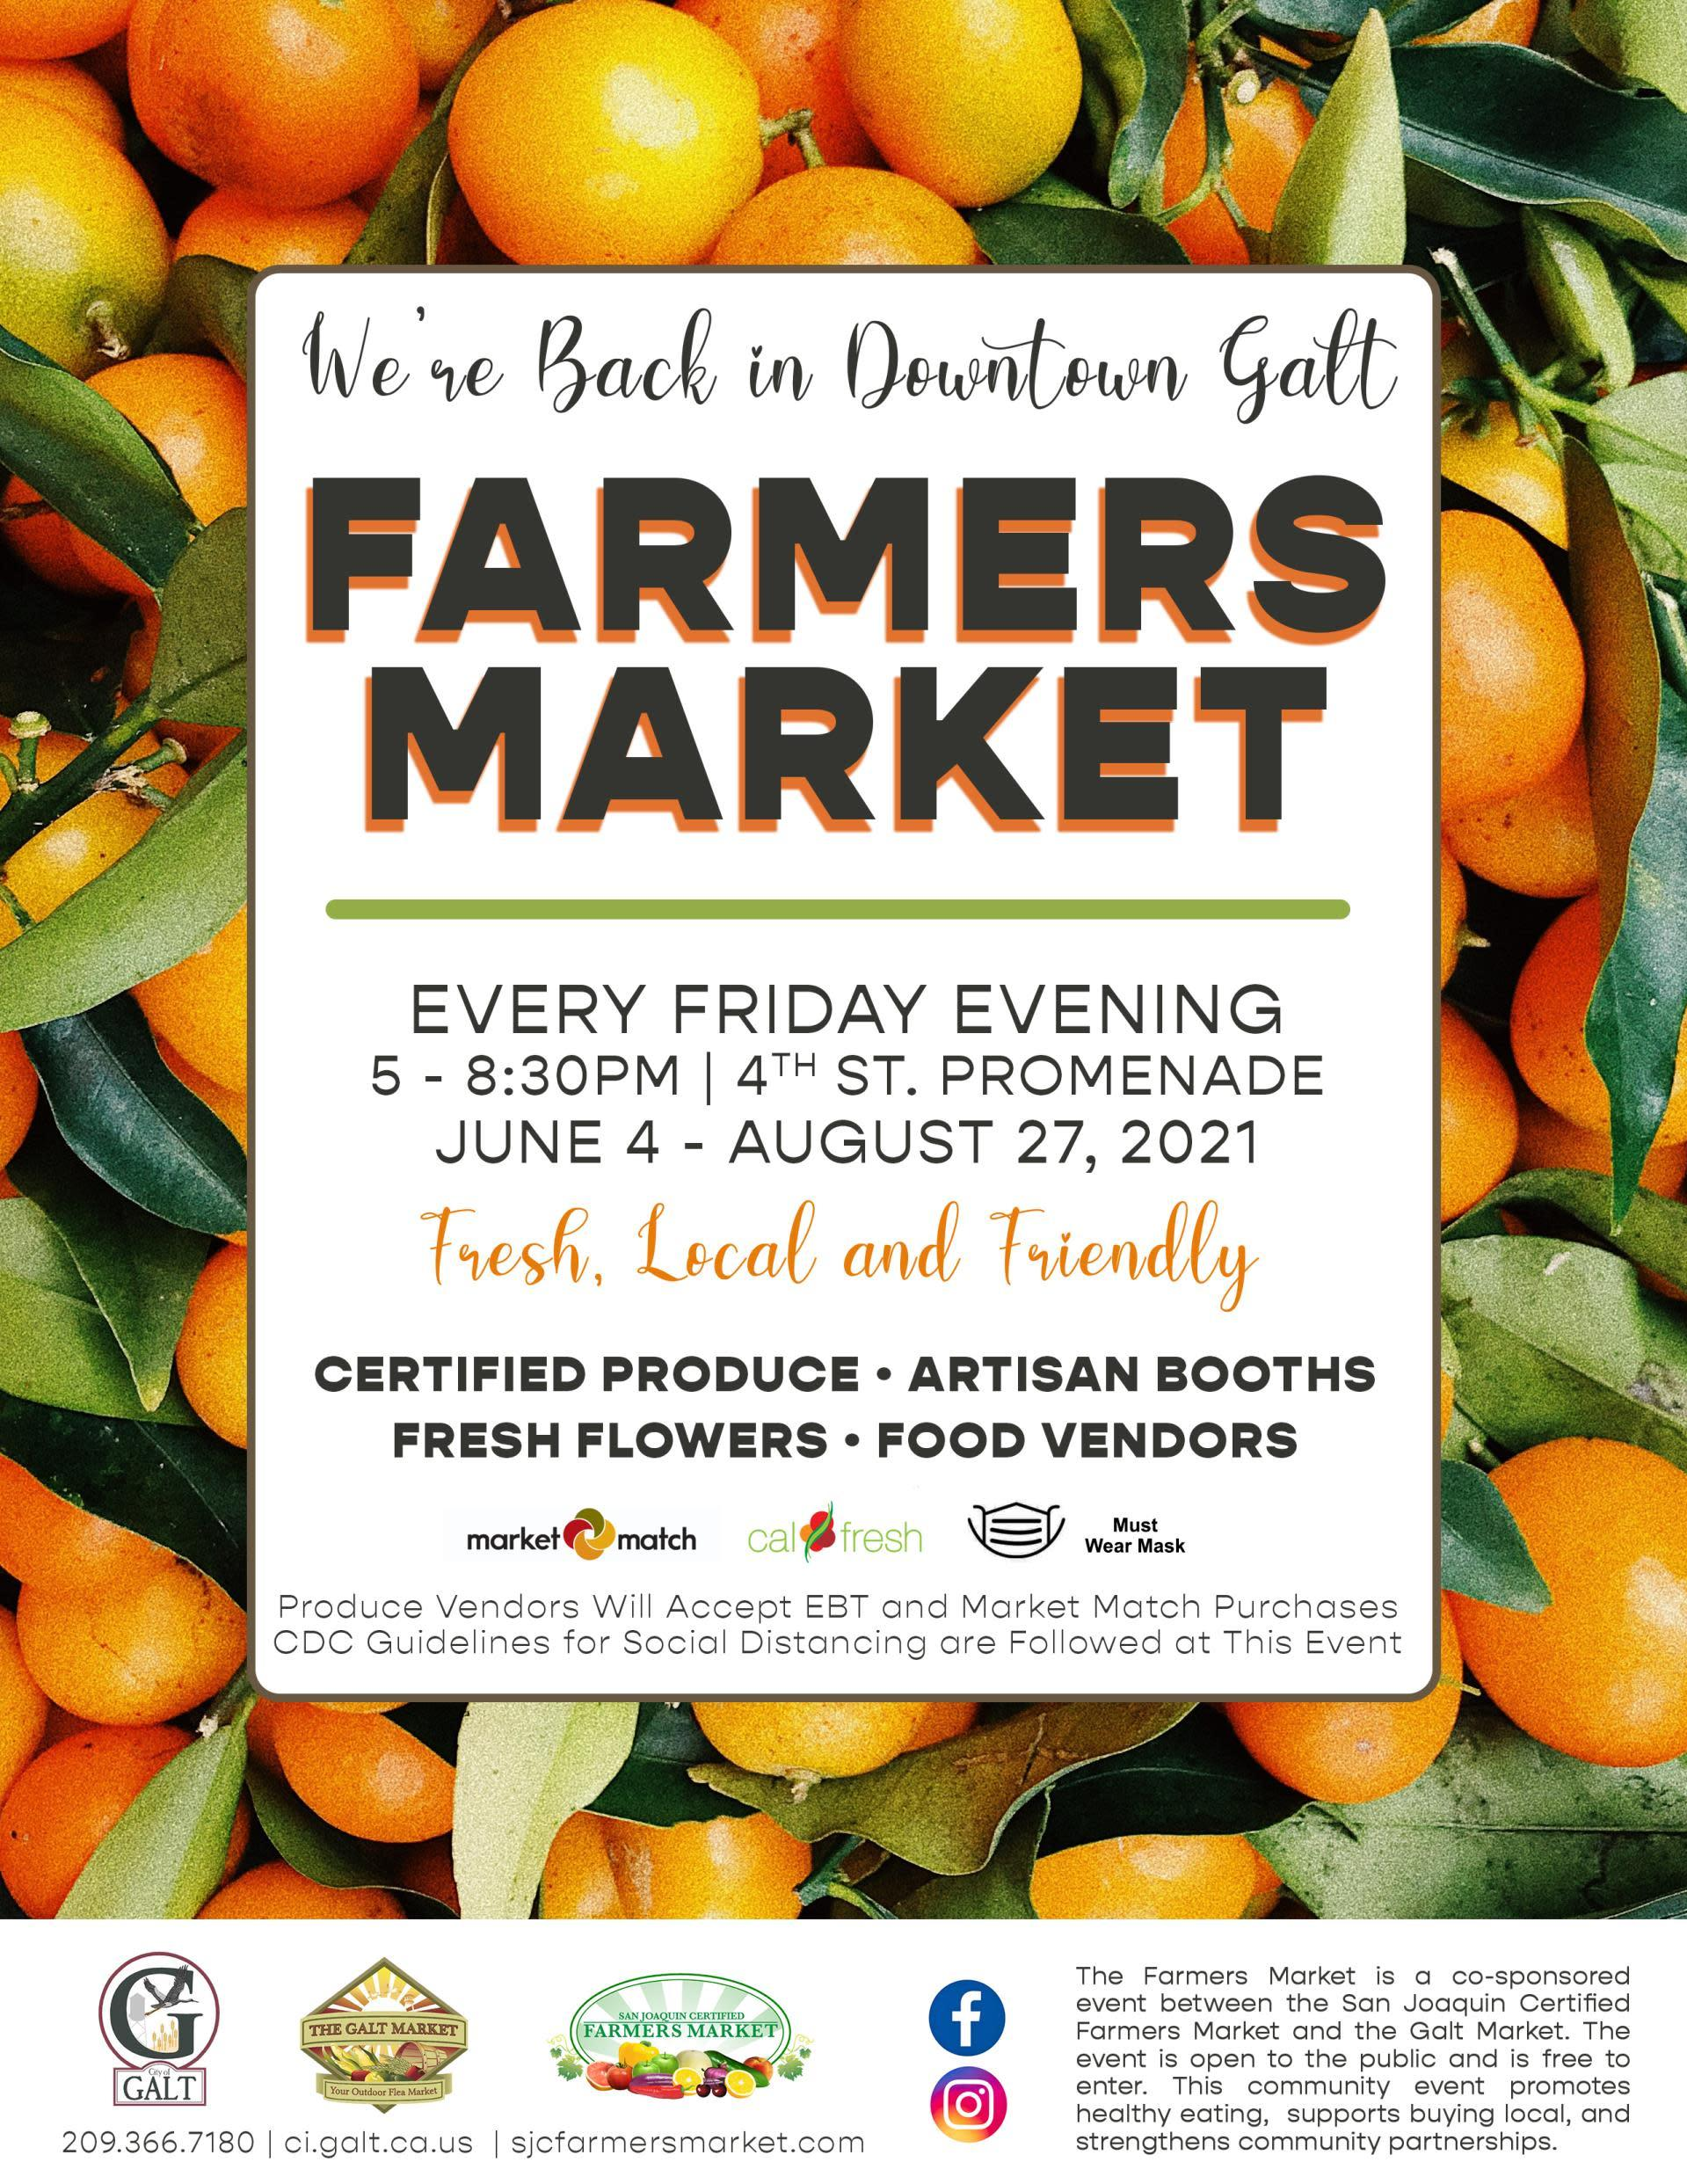 Galt Farmers Market flyer - Open 5-8 pm every Friday evening from June 4 - Aug 27, 2021